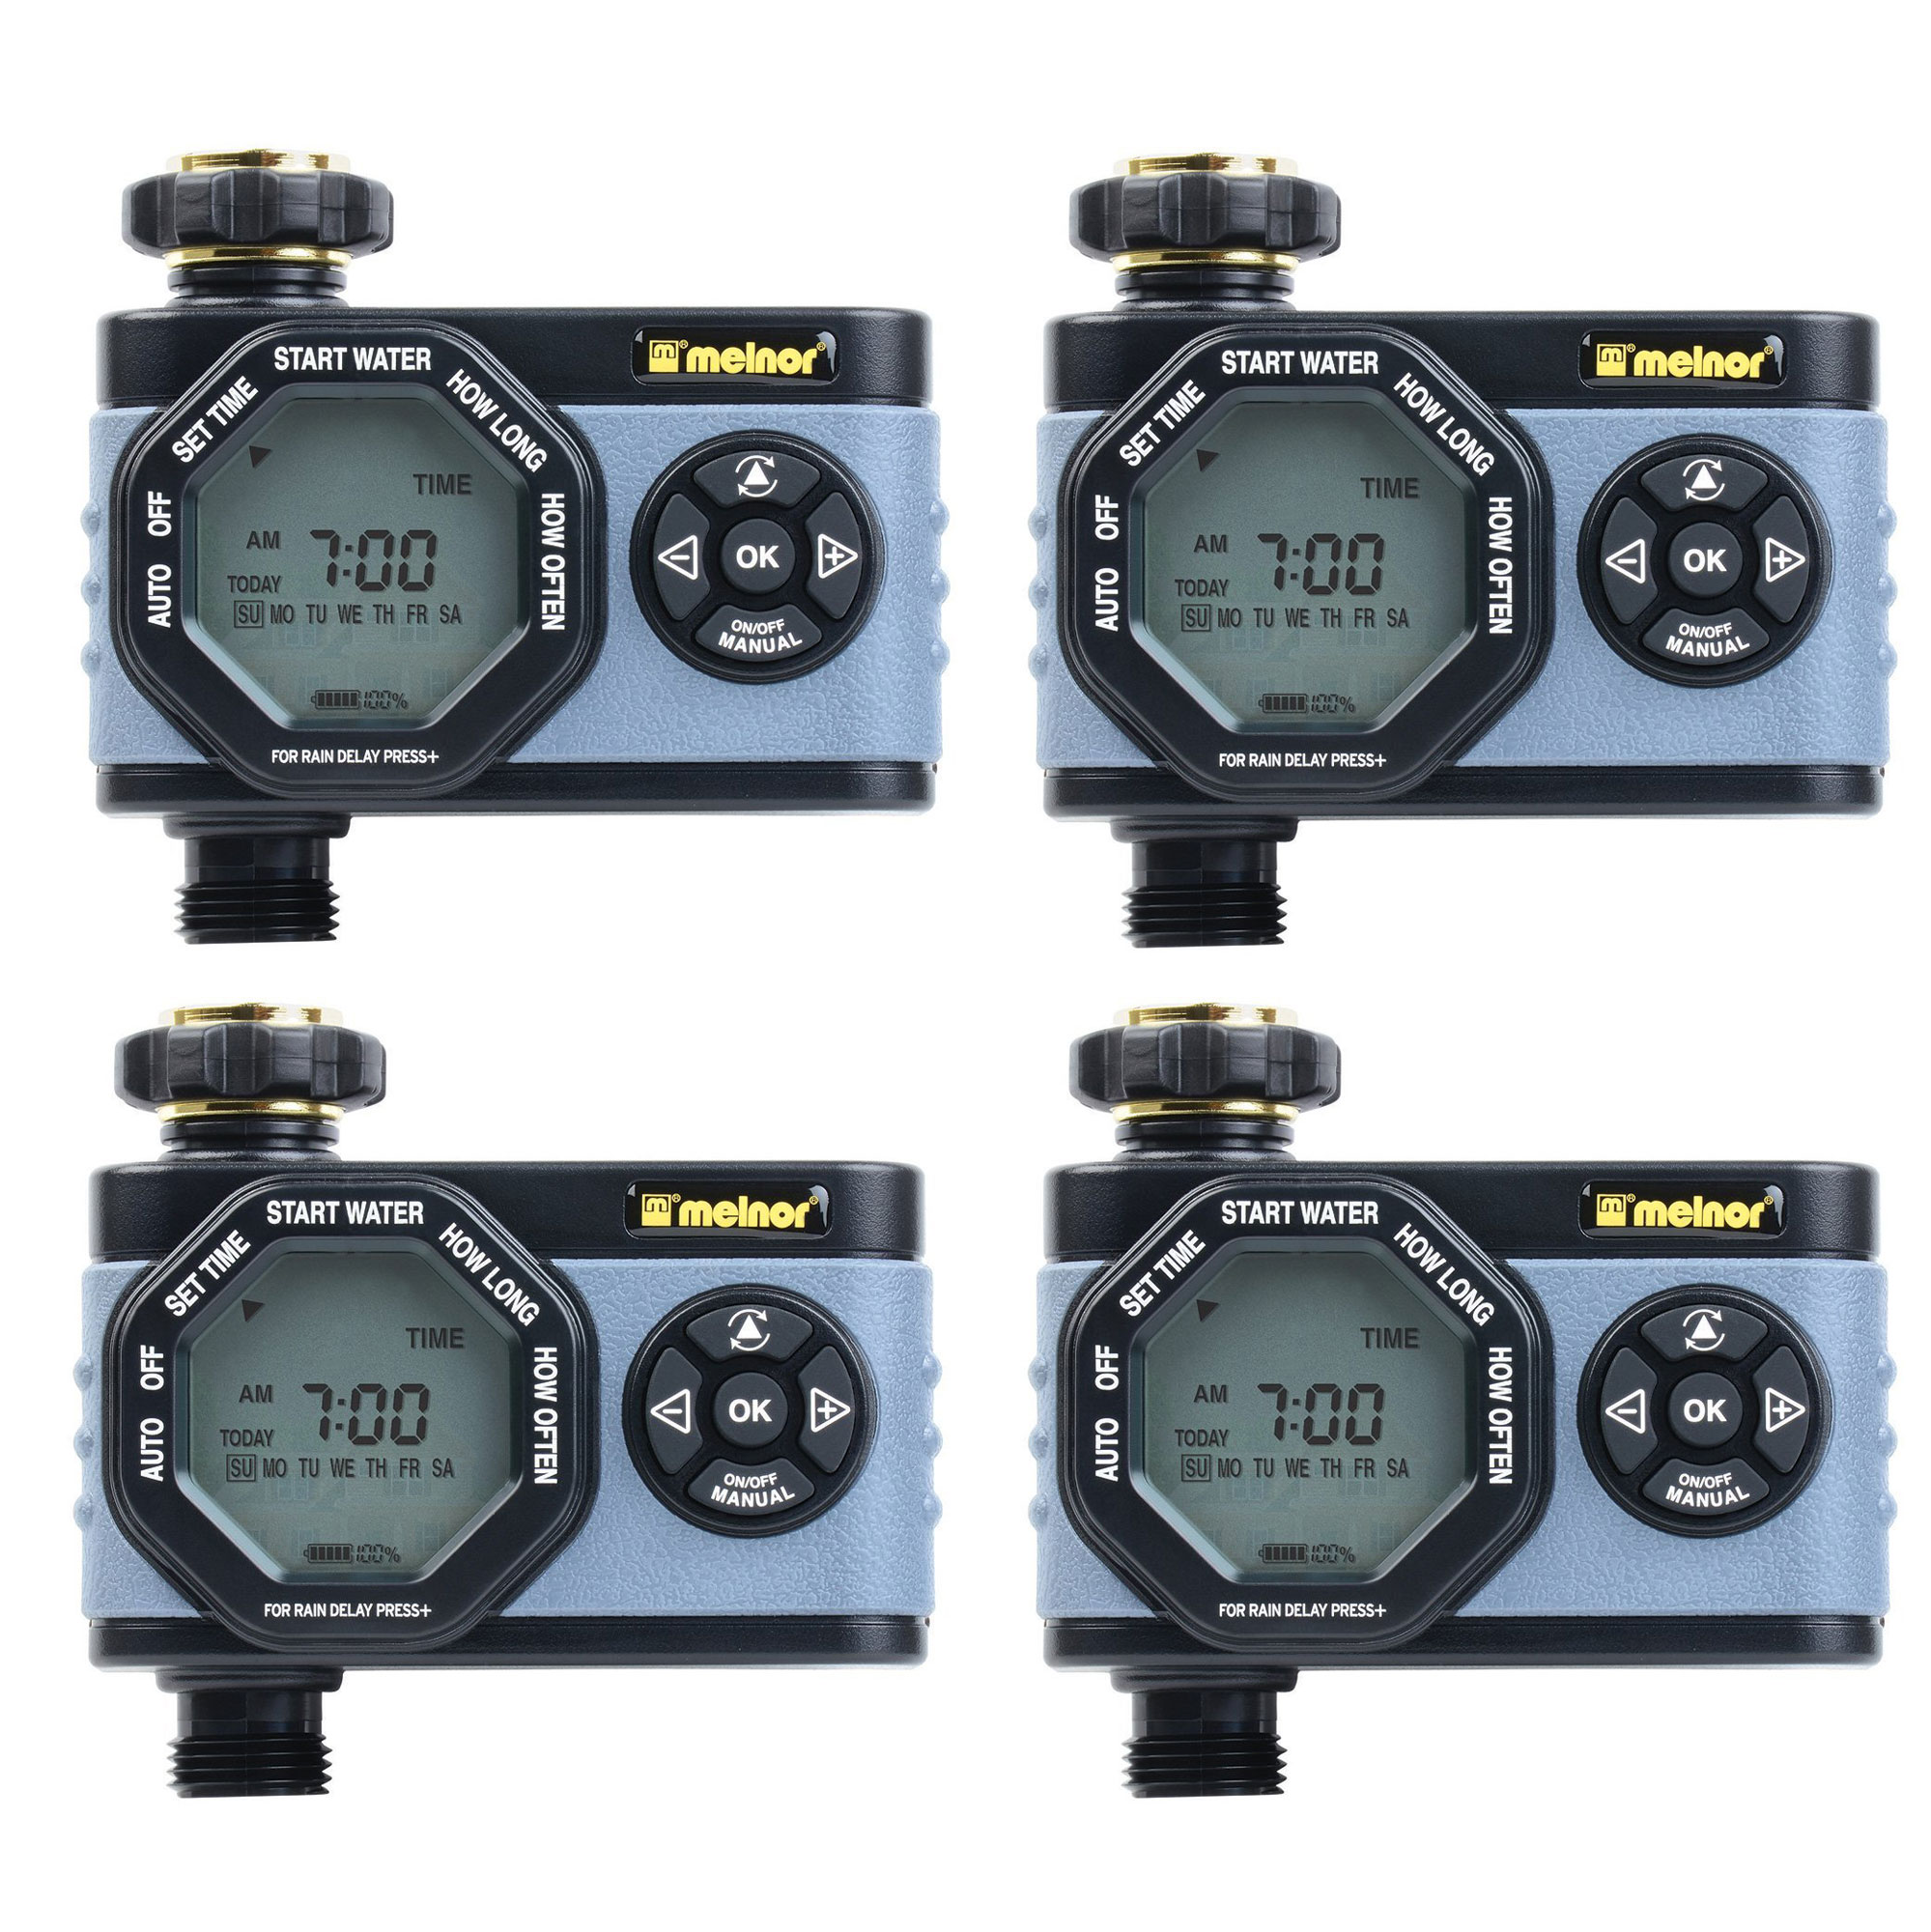 Melnor HydroLogic Digital Programmable Garden Water Timer & Controller (4 Pack) by Melnor